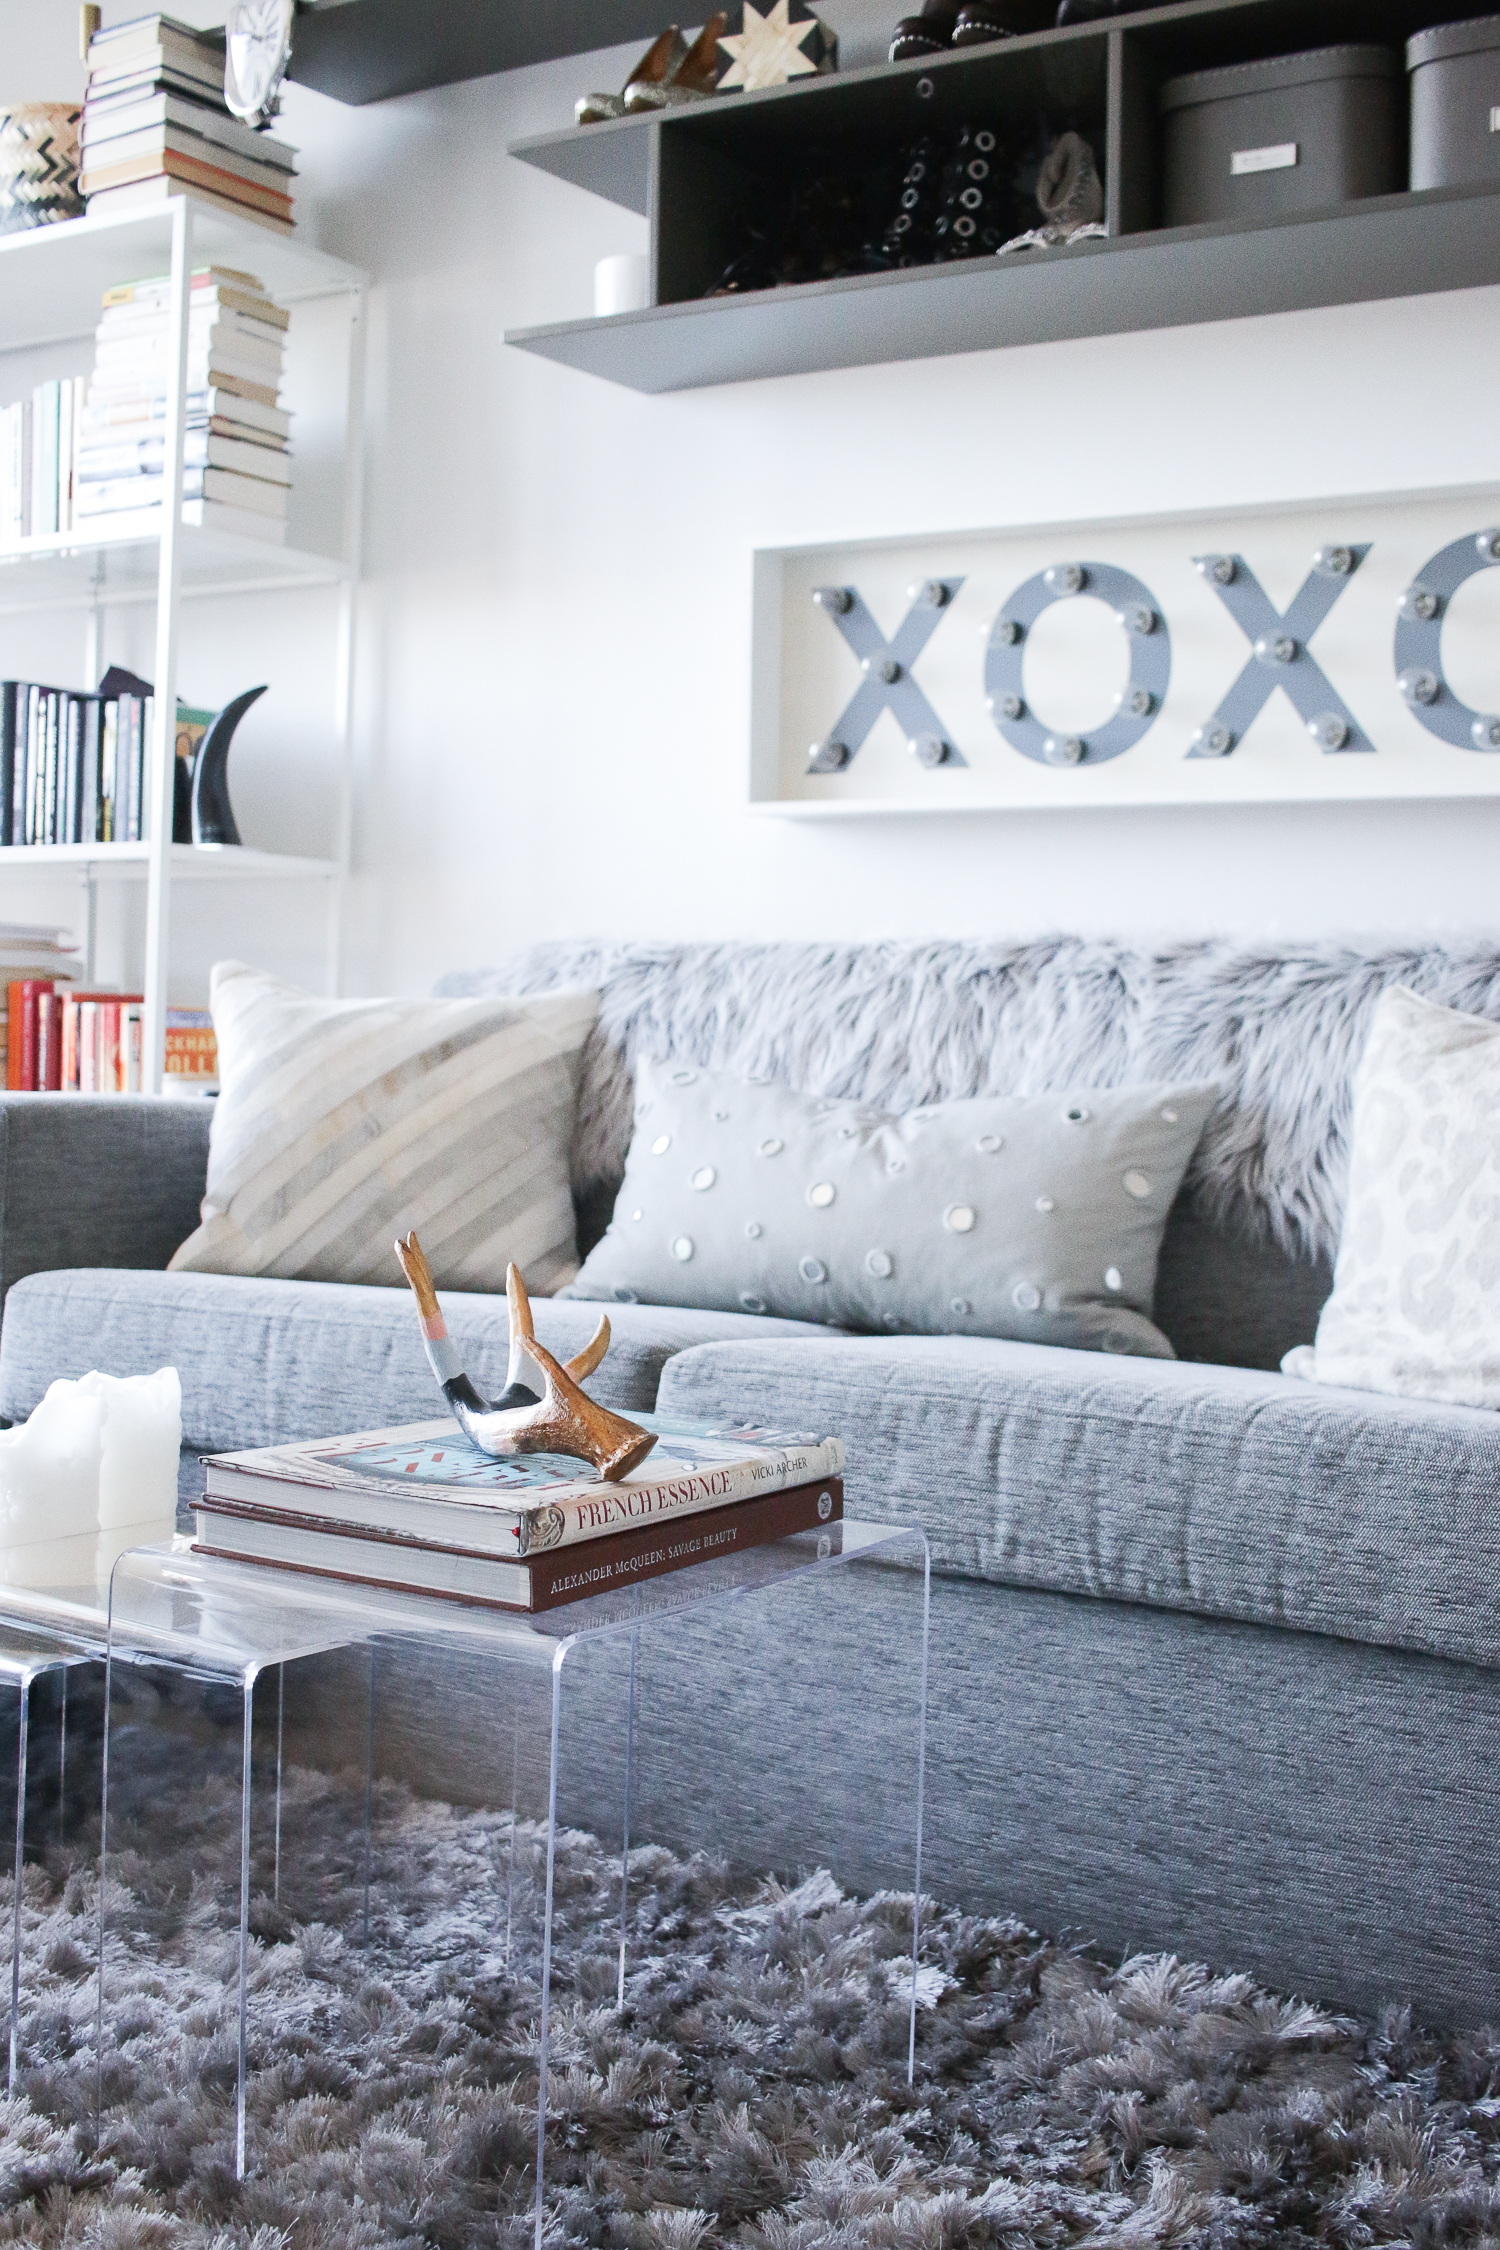 XOXO Light and Grey Couch